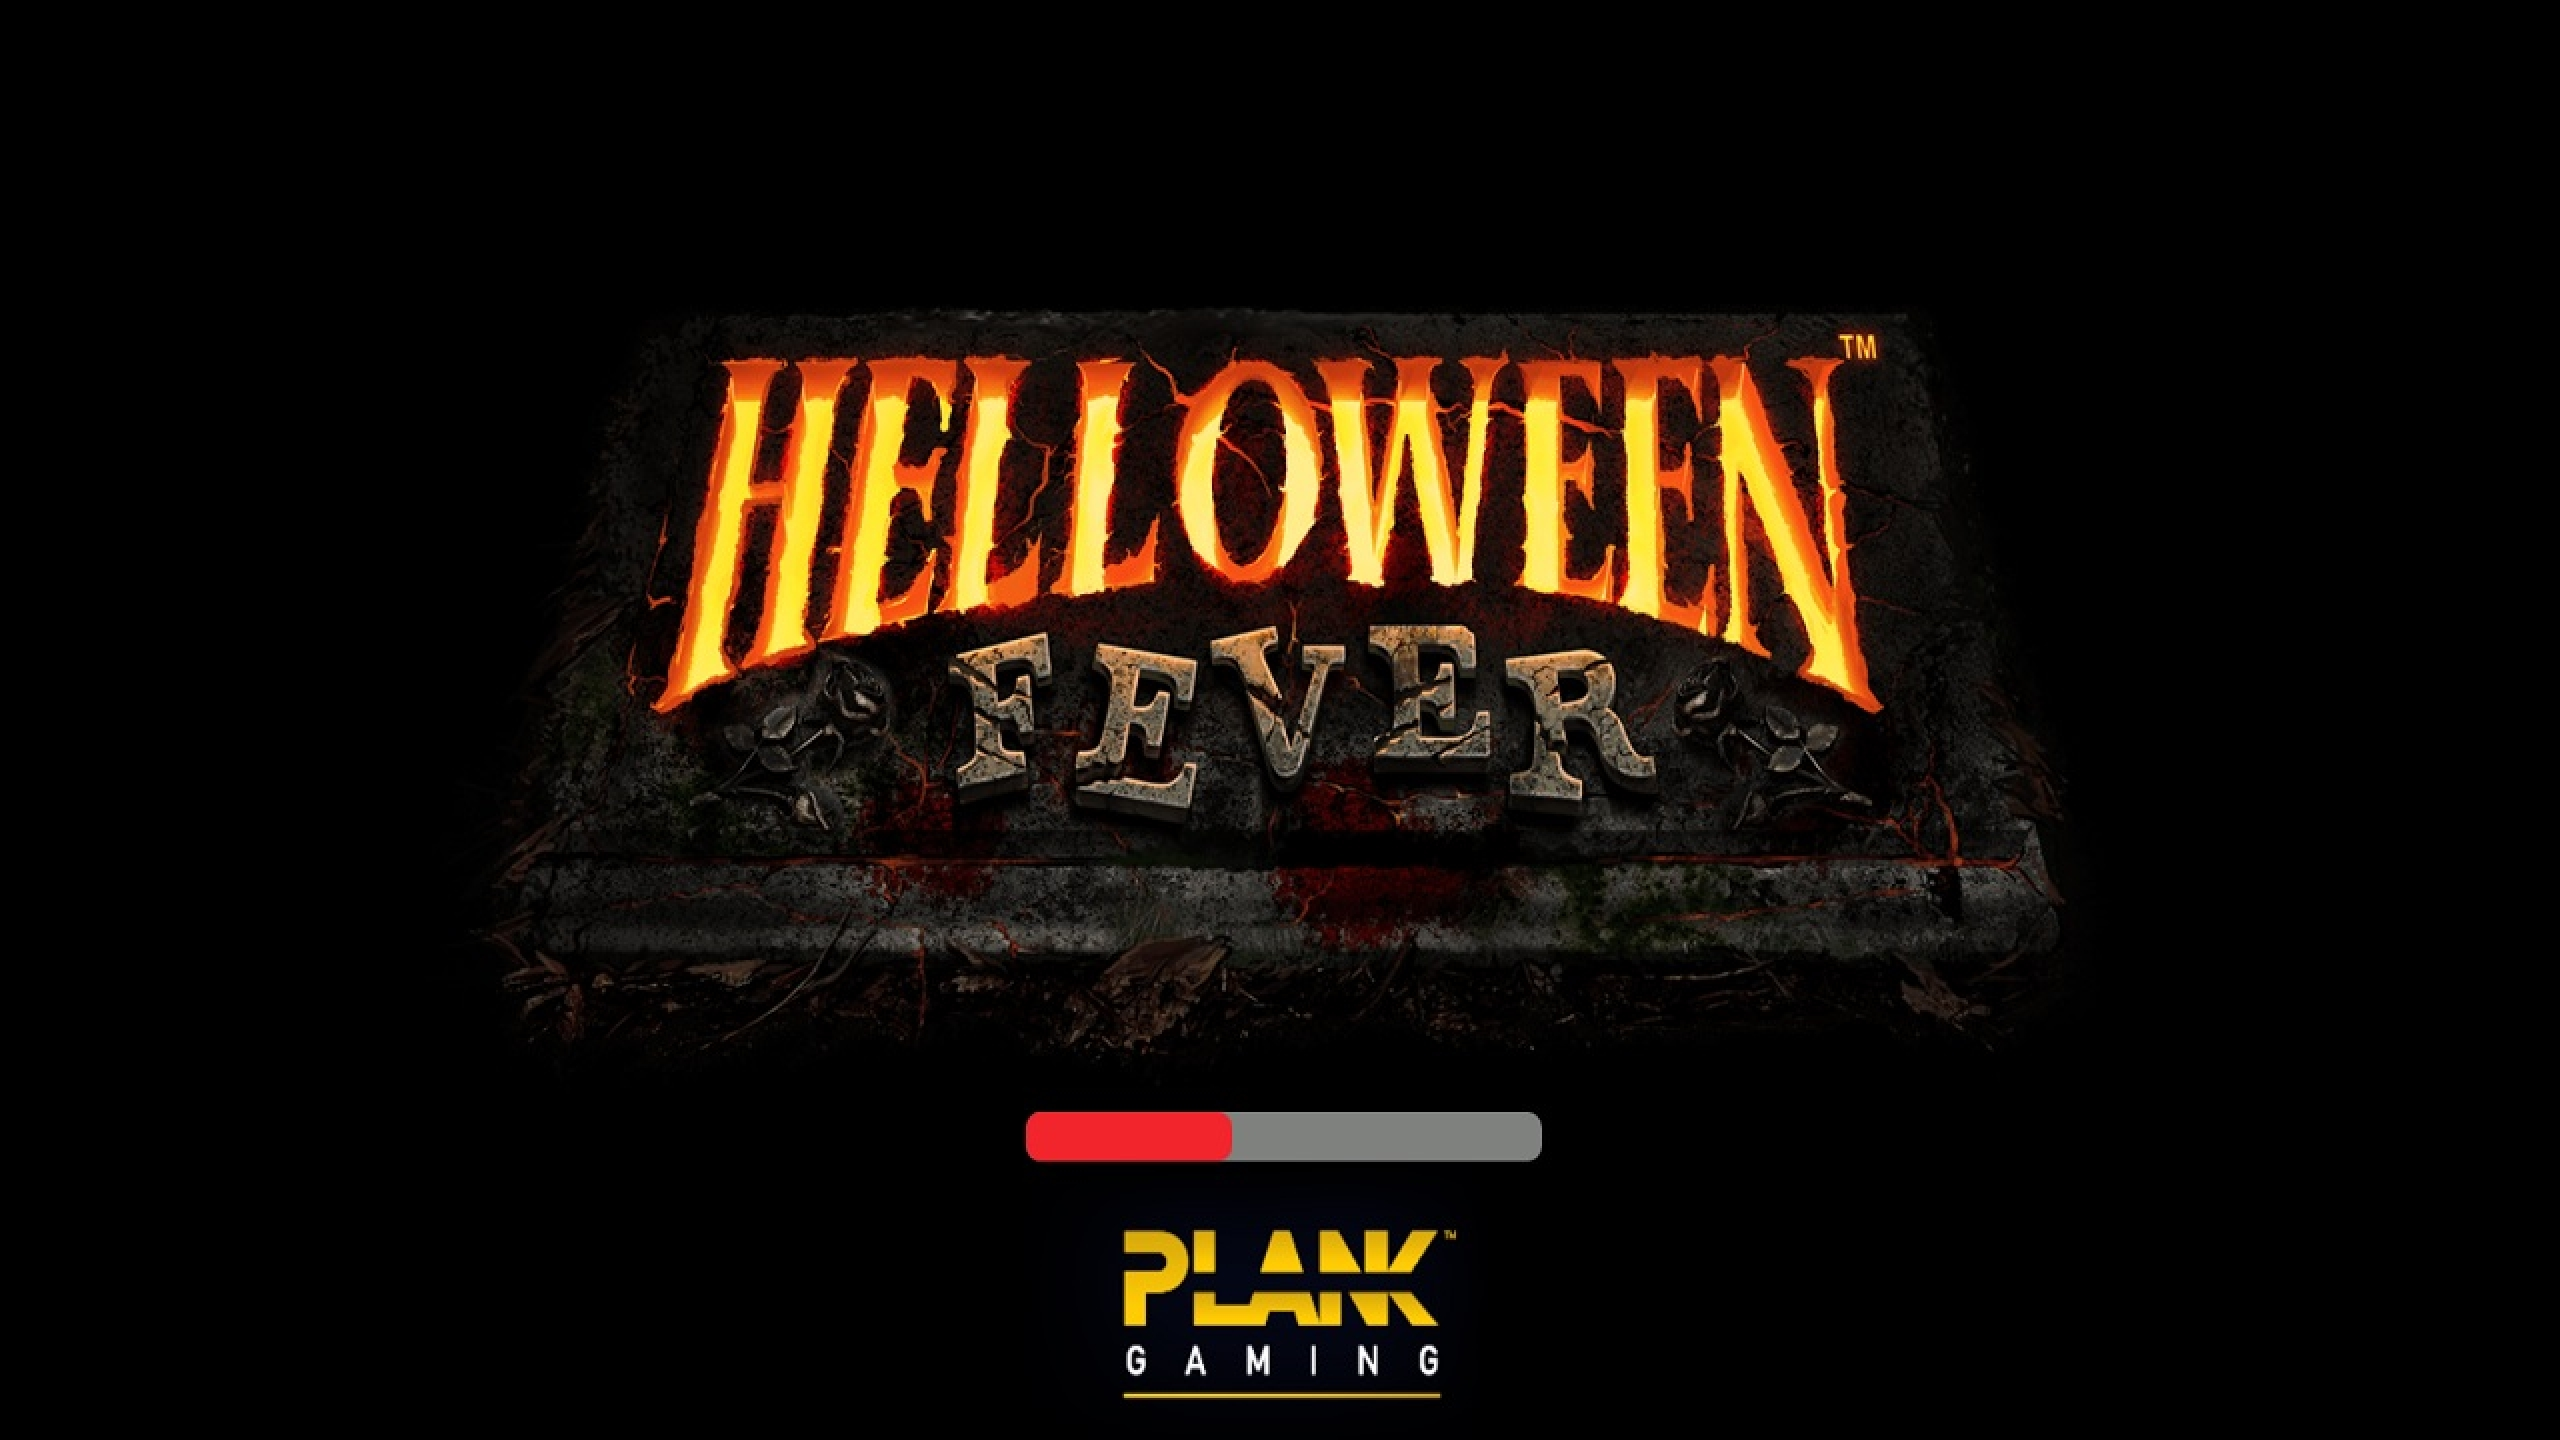 Se Helloween Fever Online Slot Demo Game, Plank Gaming